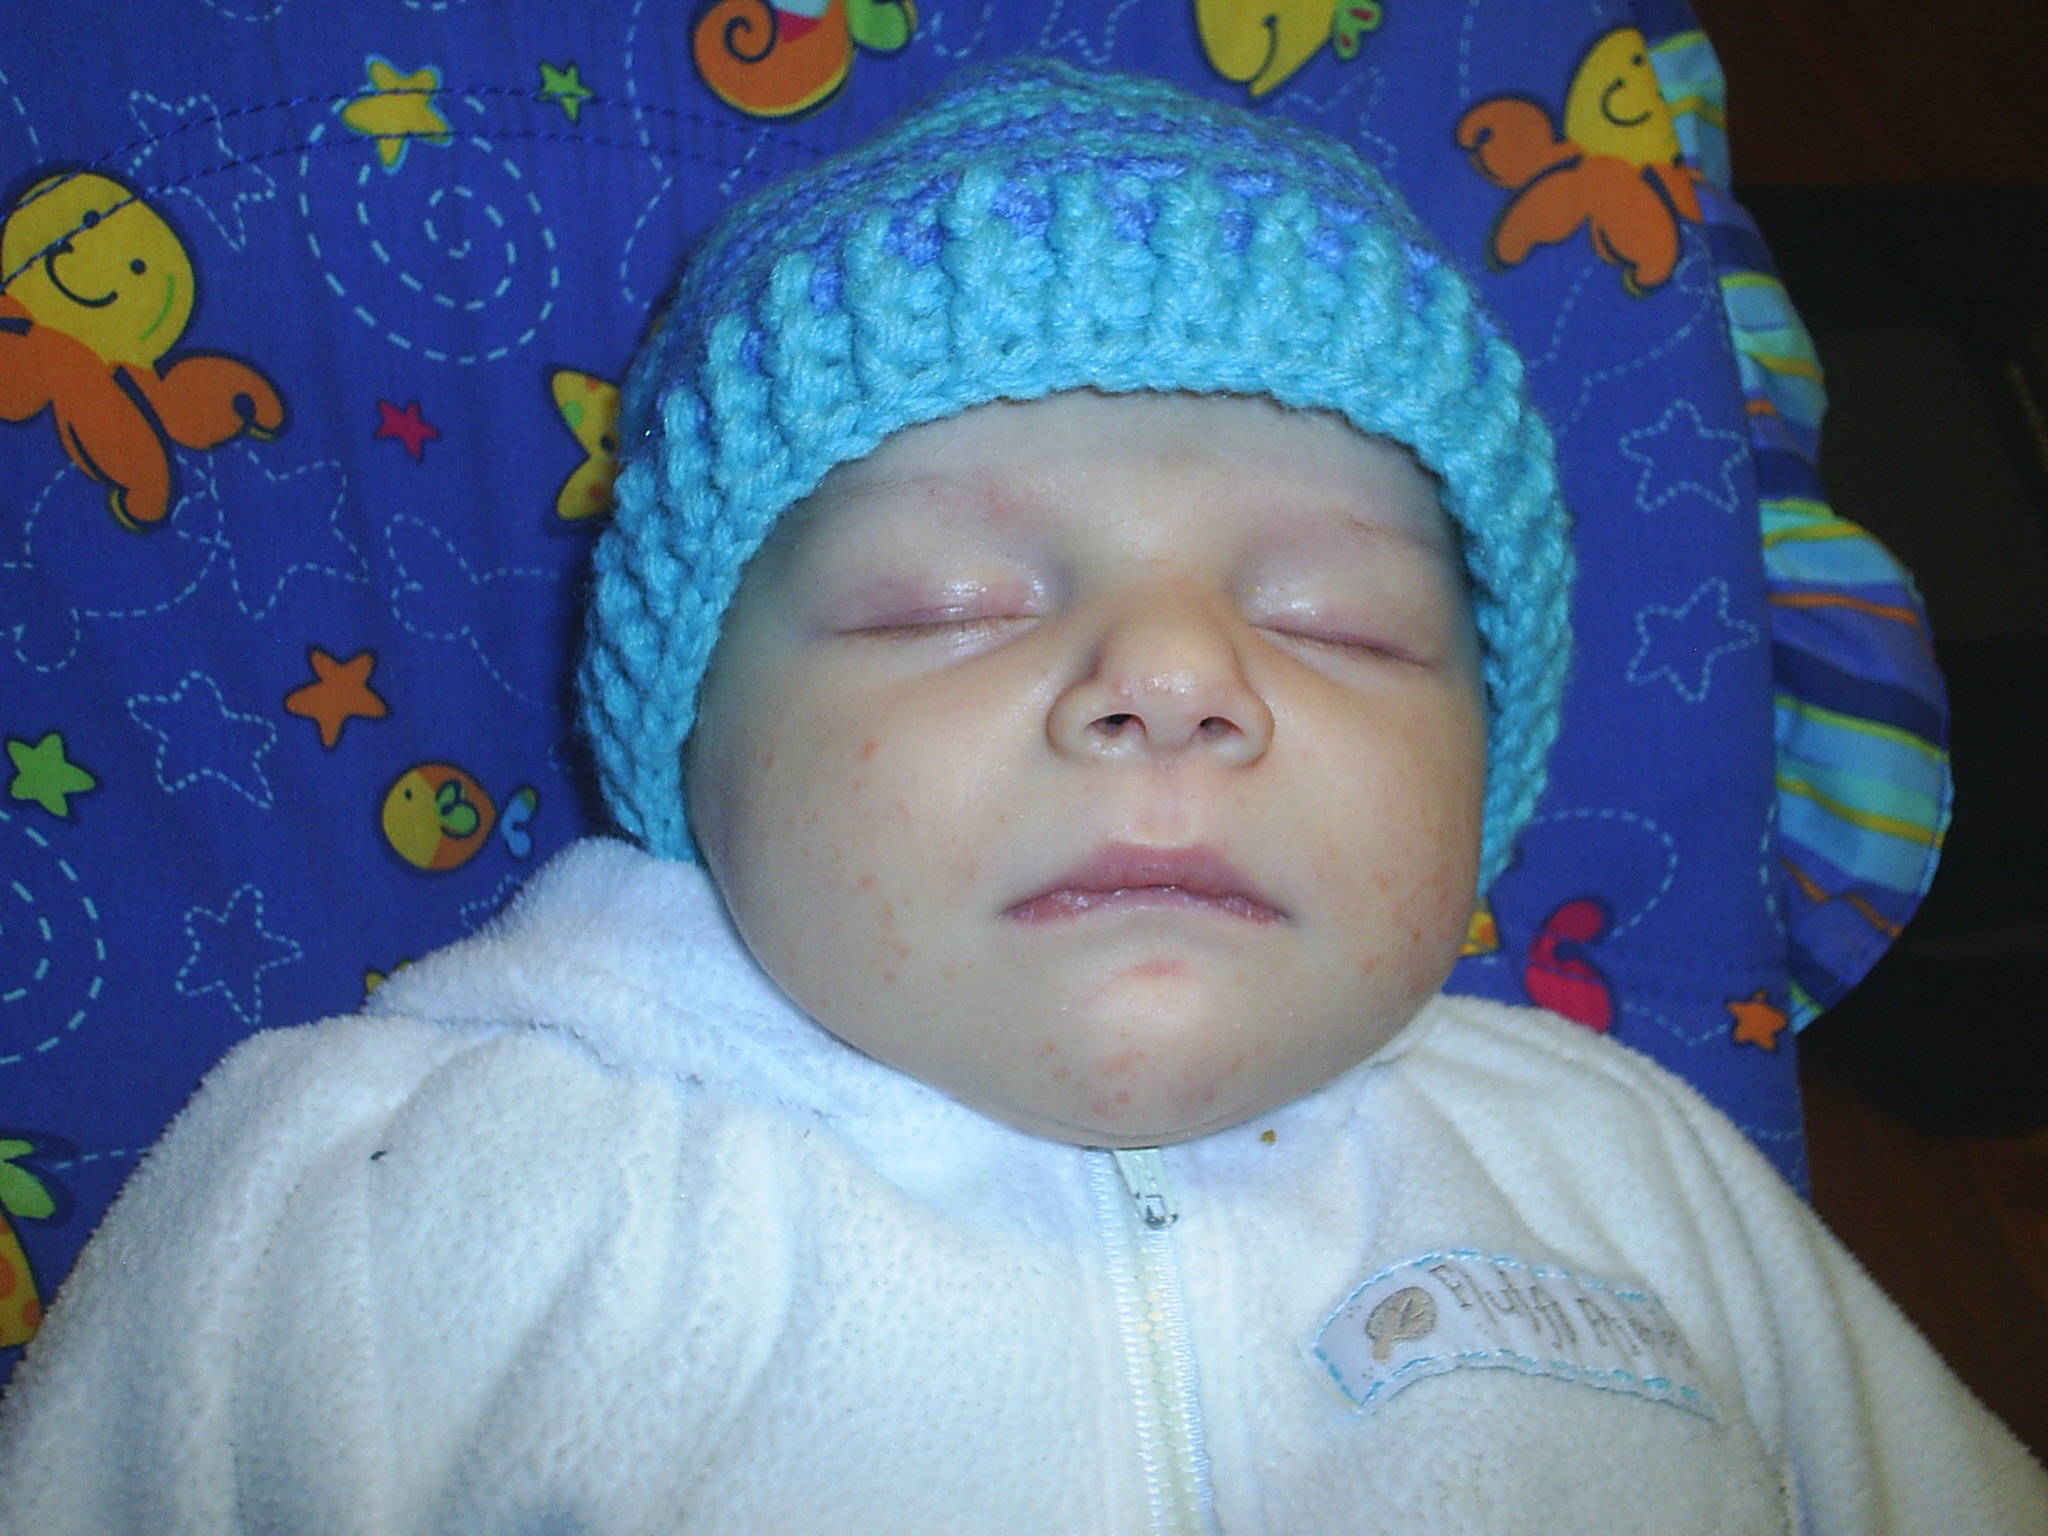 Crochet Baby Beanie Pattern Easy : Baby Hat Crochet Pattern - Modern Homemakers